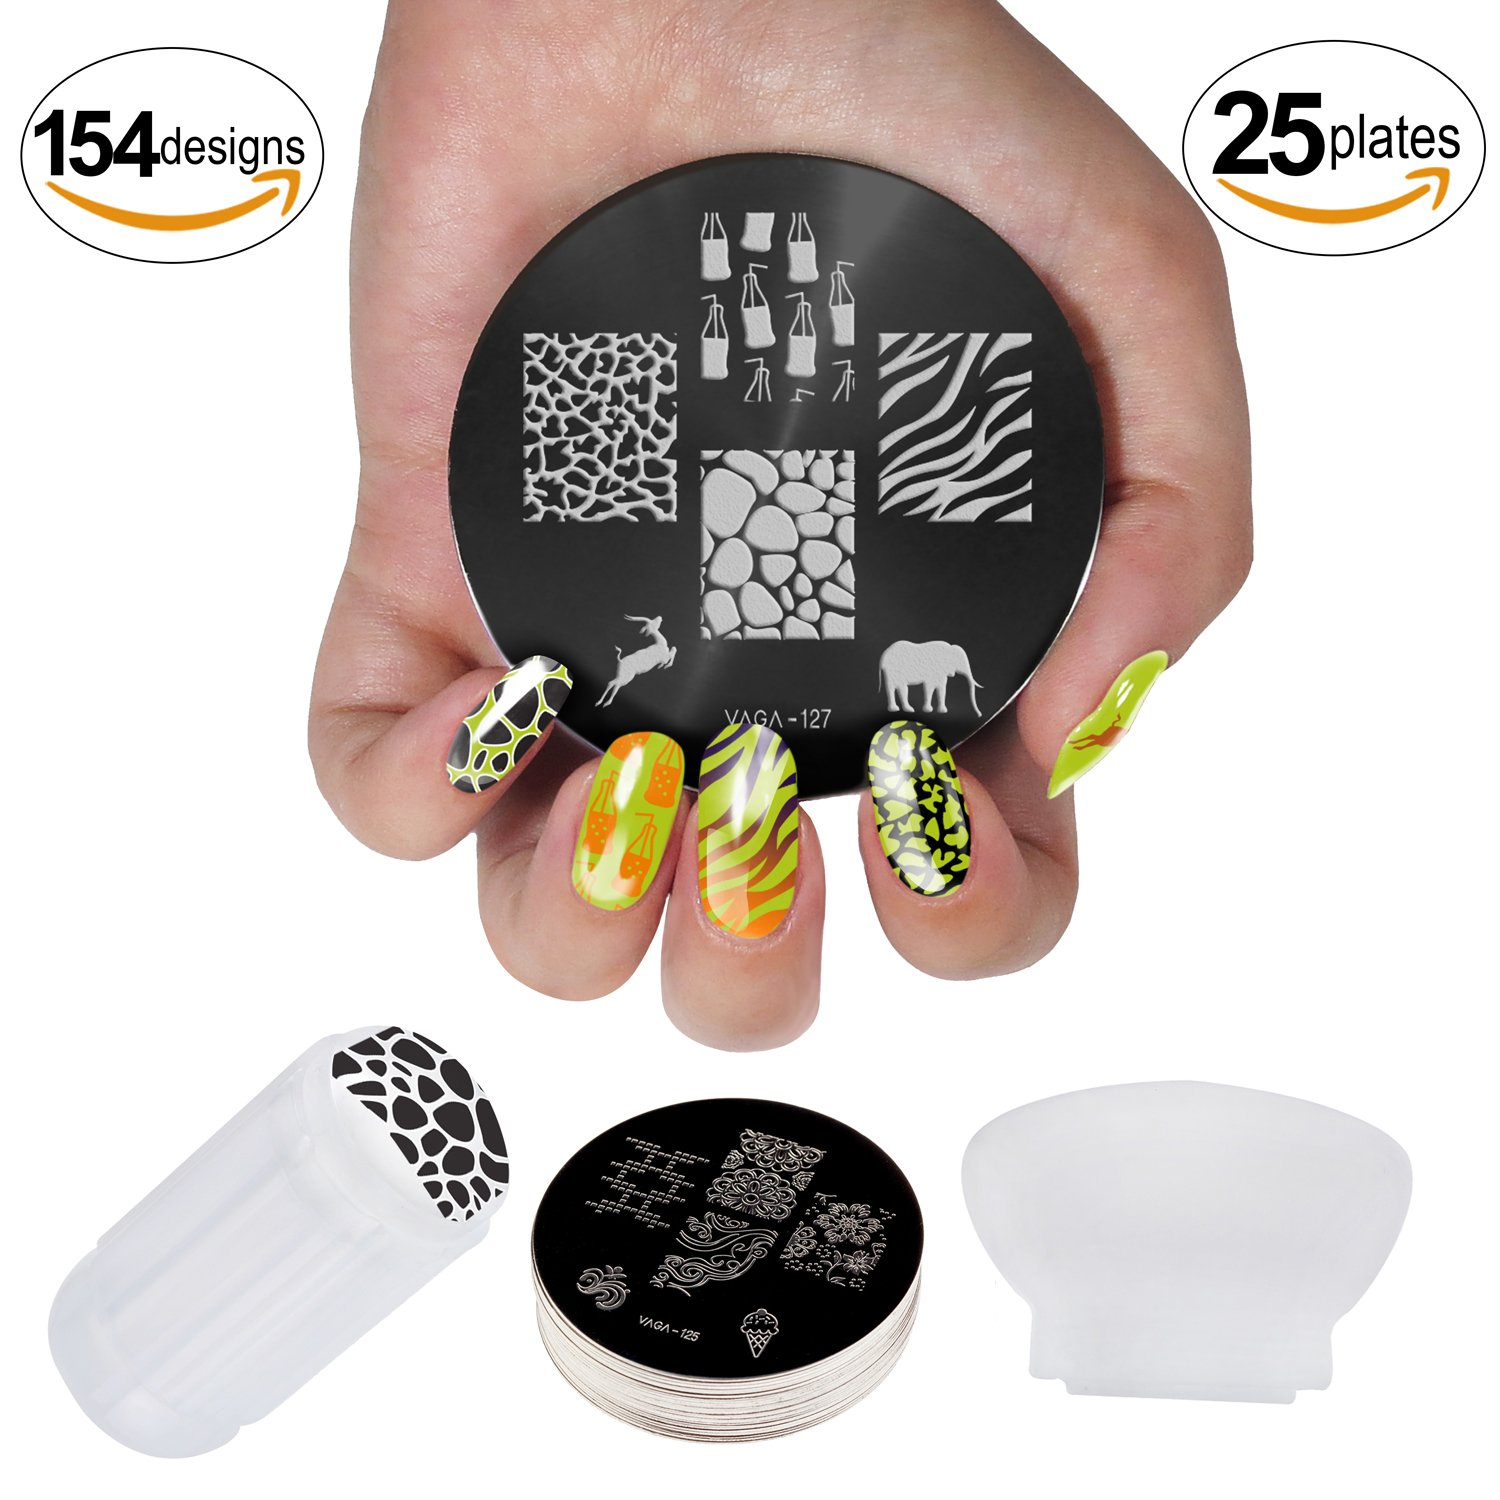 Professional Manicure Nail Art Set Kit With Polish Stamp Stamping Image Plates Accessories And Nail Art Stamper And Scraper By VAGA®